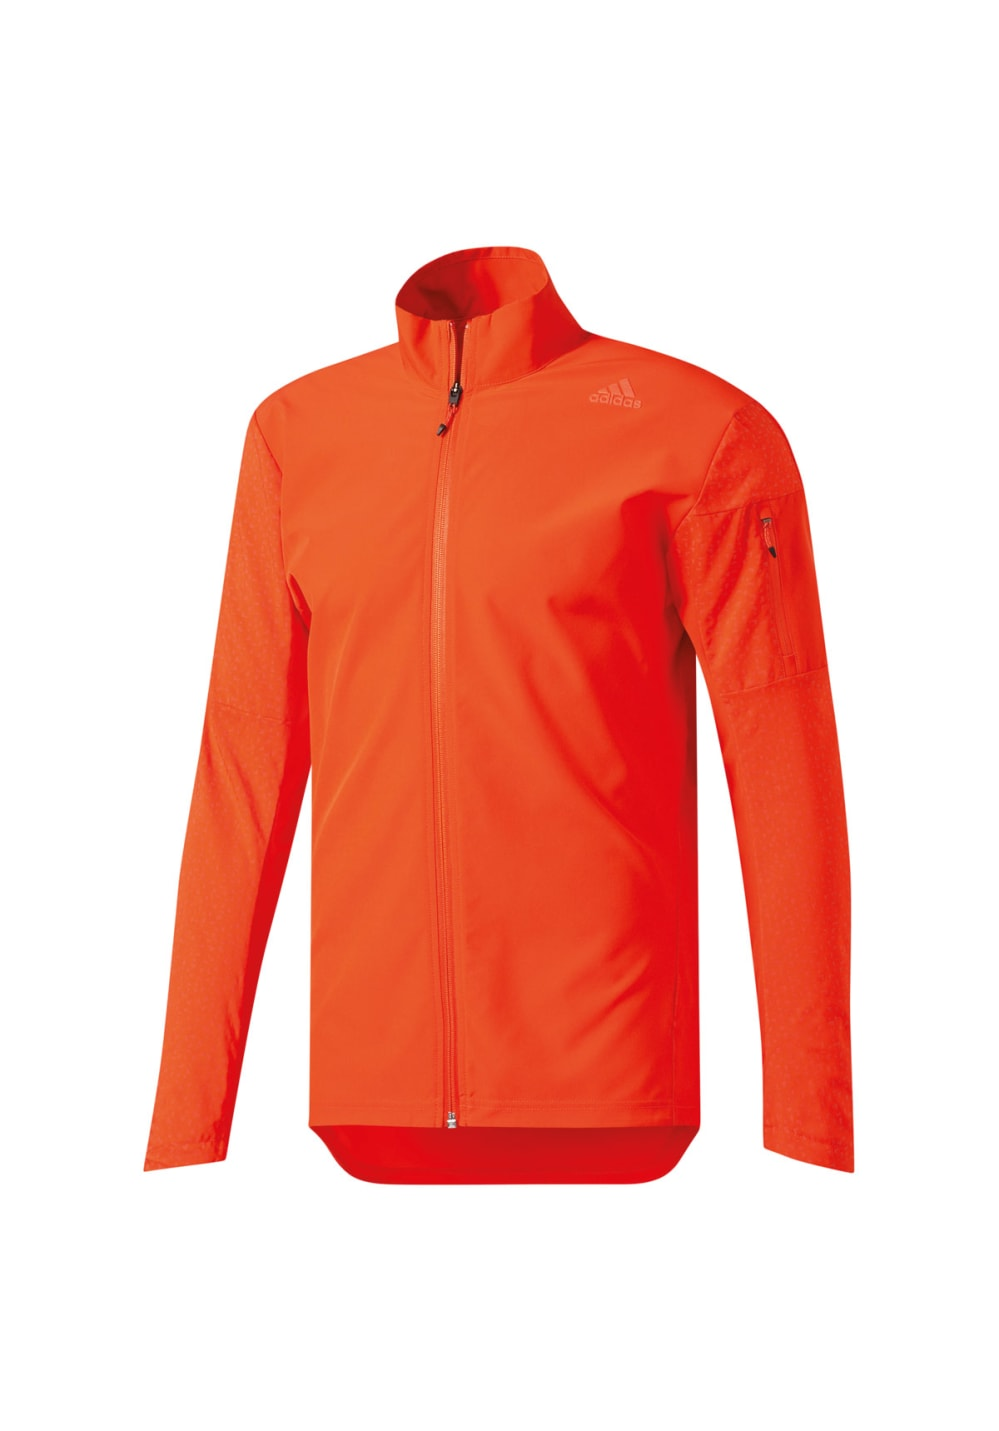 7183a05ff67cd Next. -10%. This product is currently out of stock. adidas. Supernova Storm  Jacket - Running jackets for Men